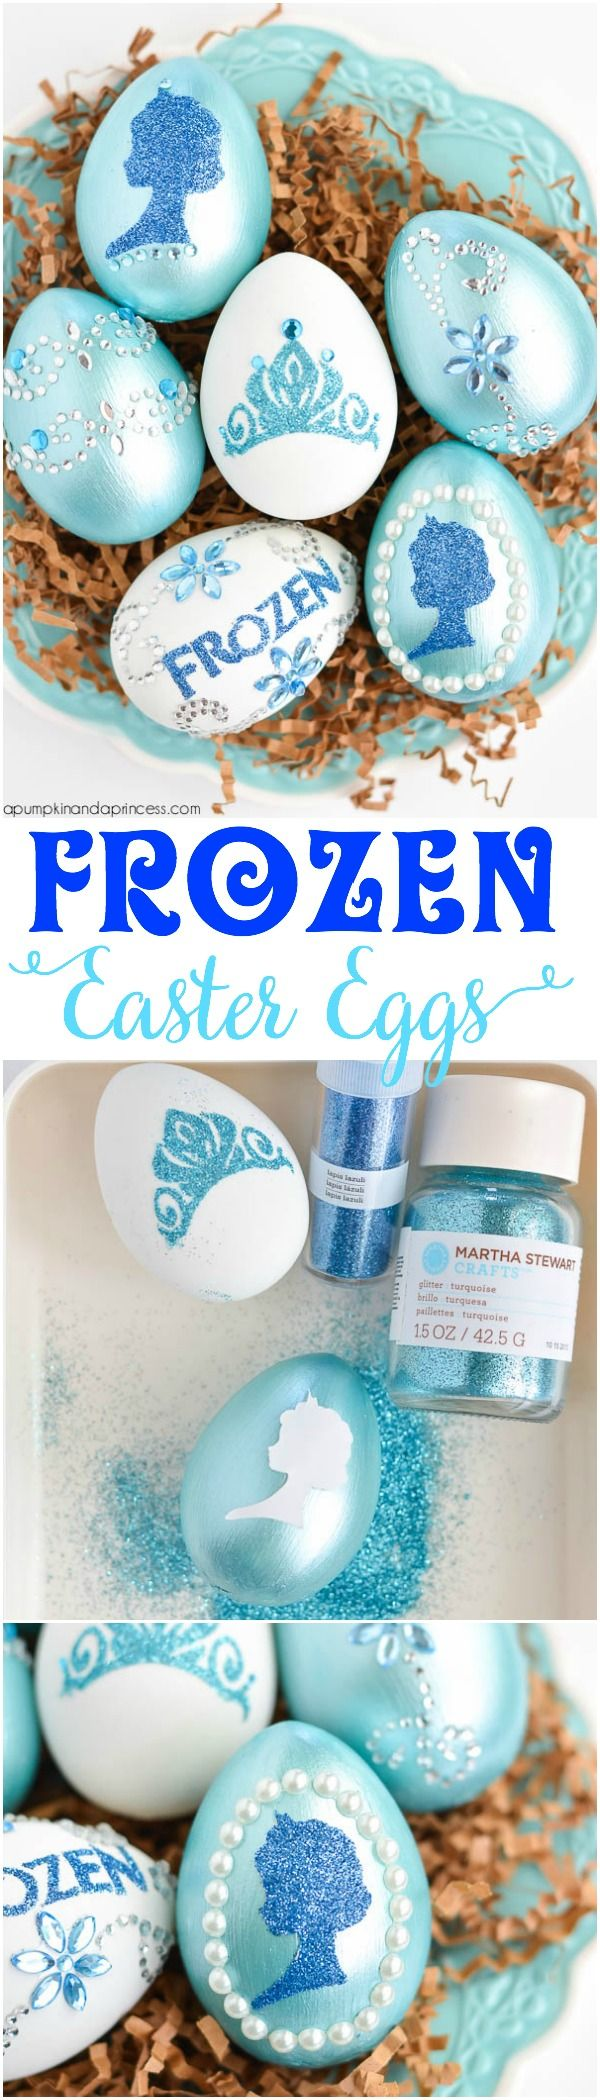 DIY Disney Frozen Easter Eggs